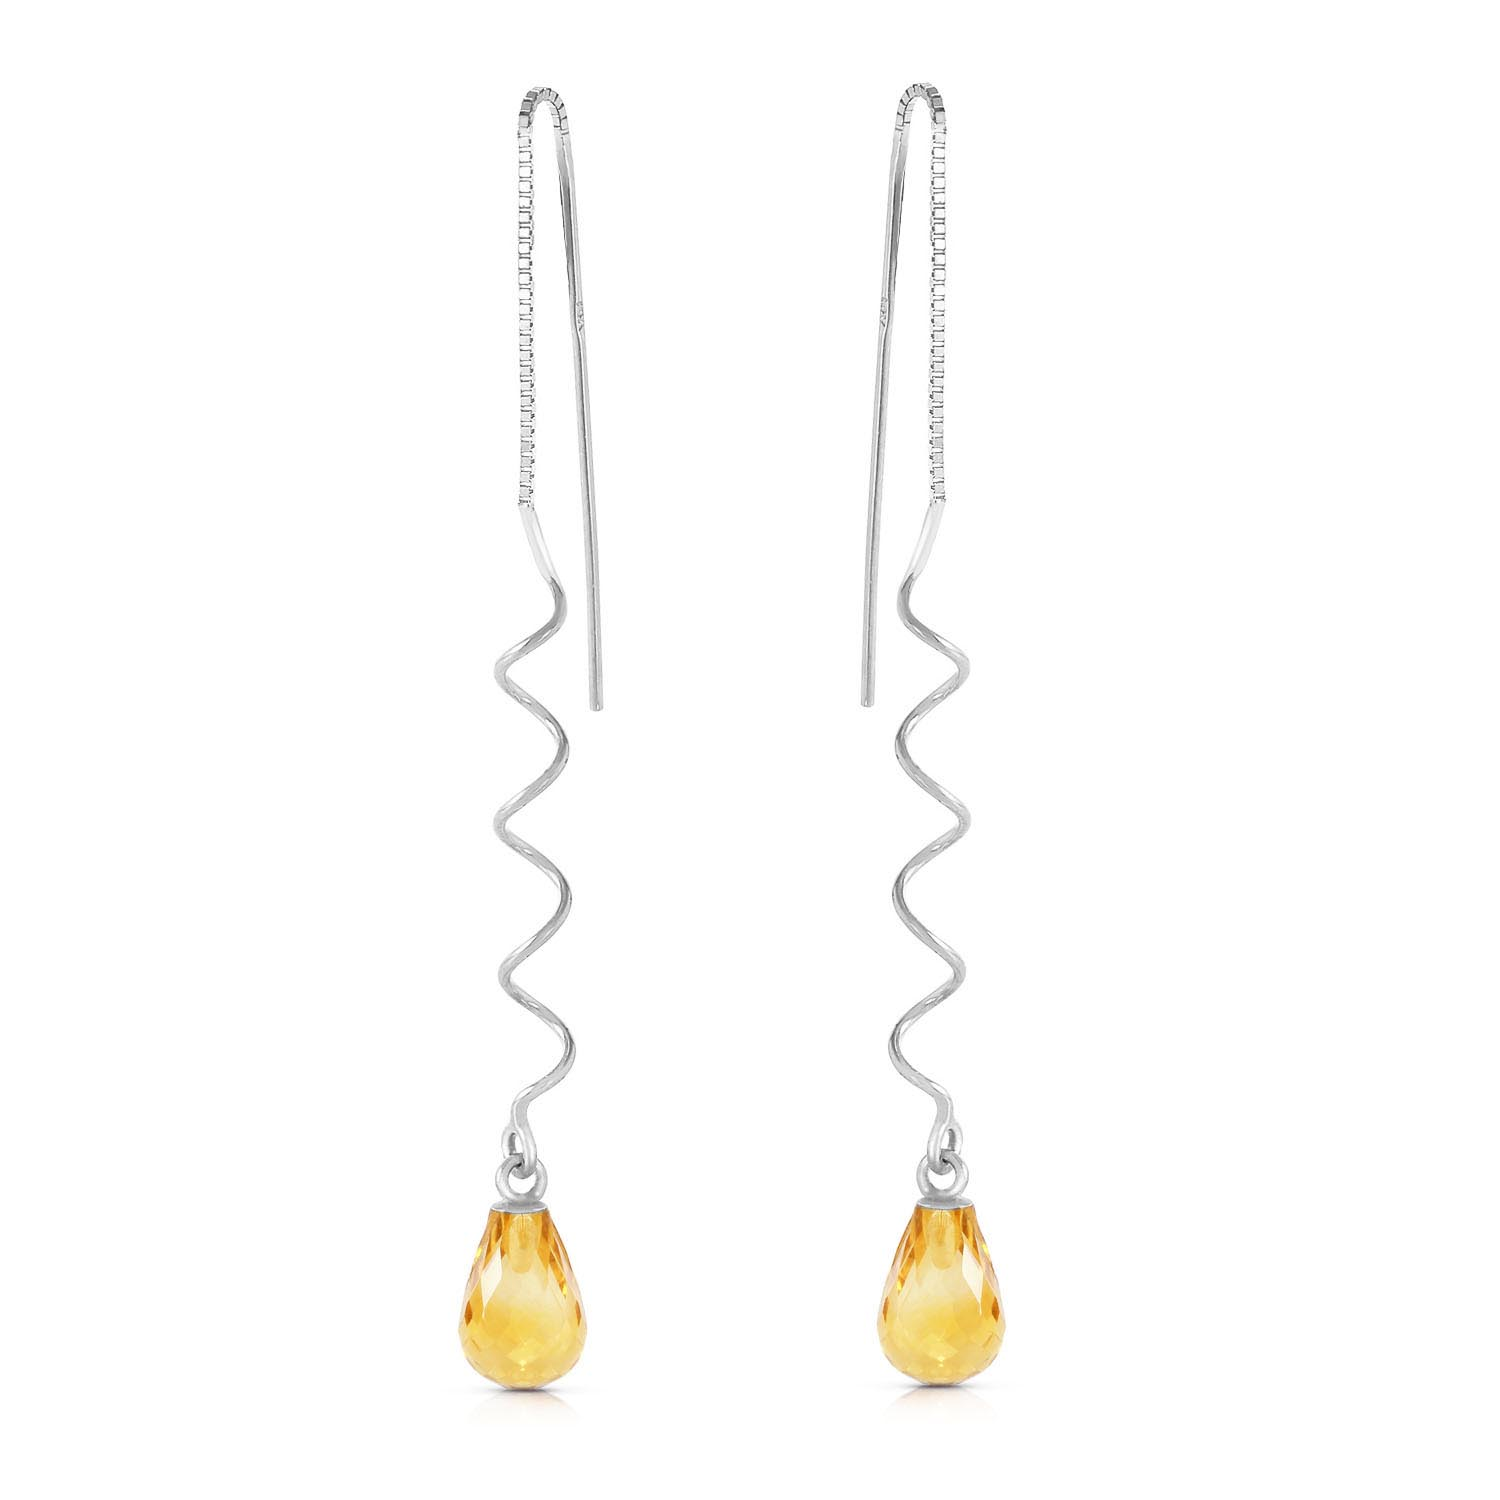 Citrine Spiral Scintilla Earrings 3.3 ctw in 9ct White Gold